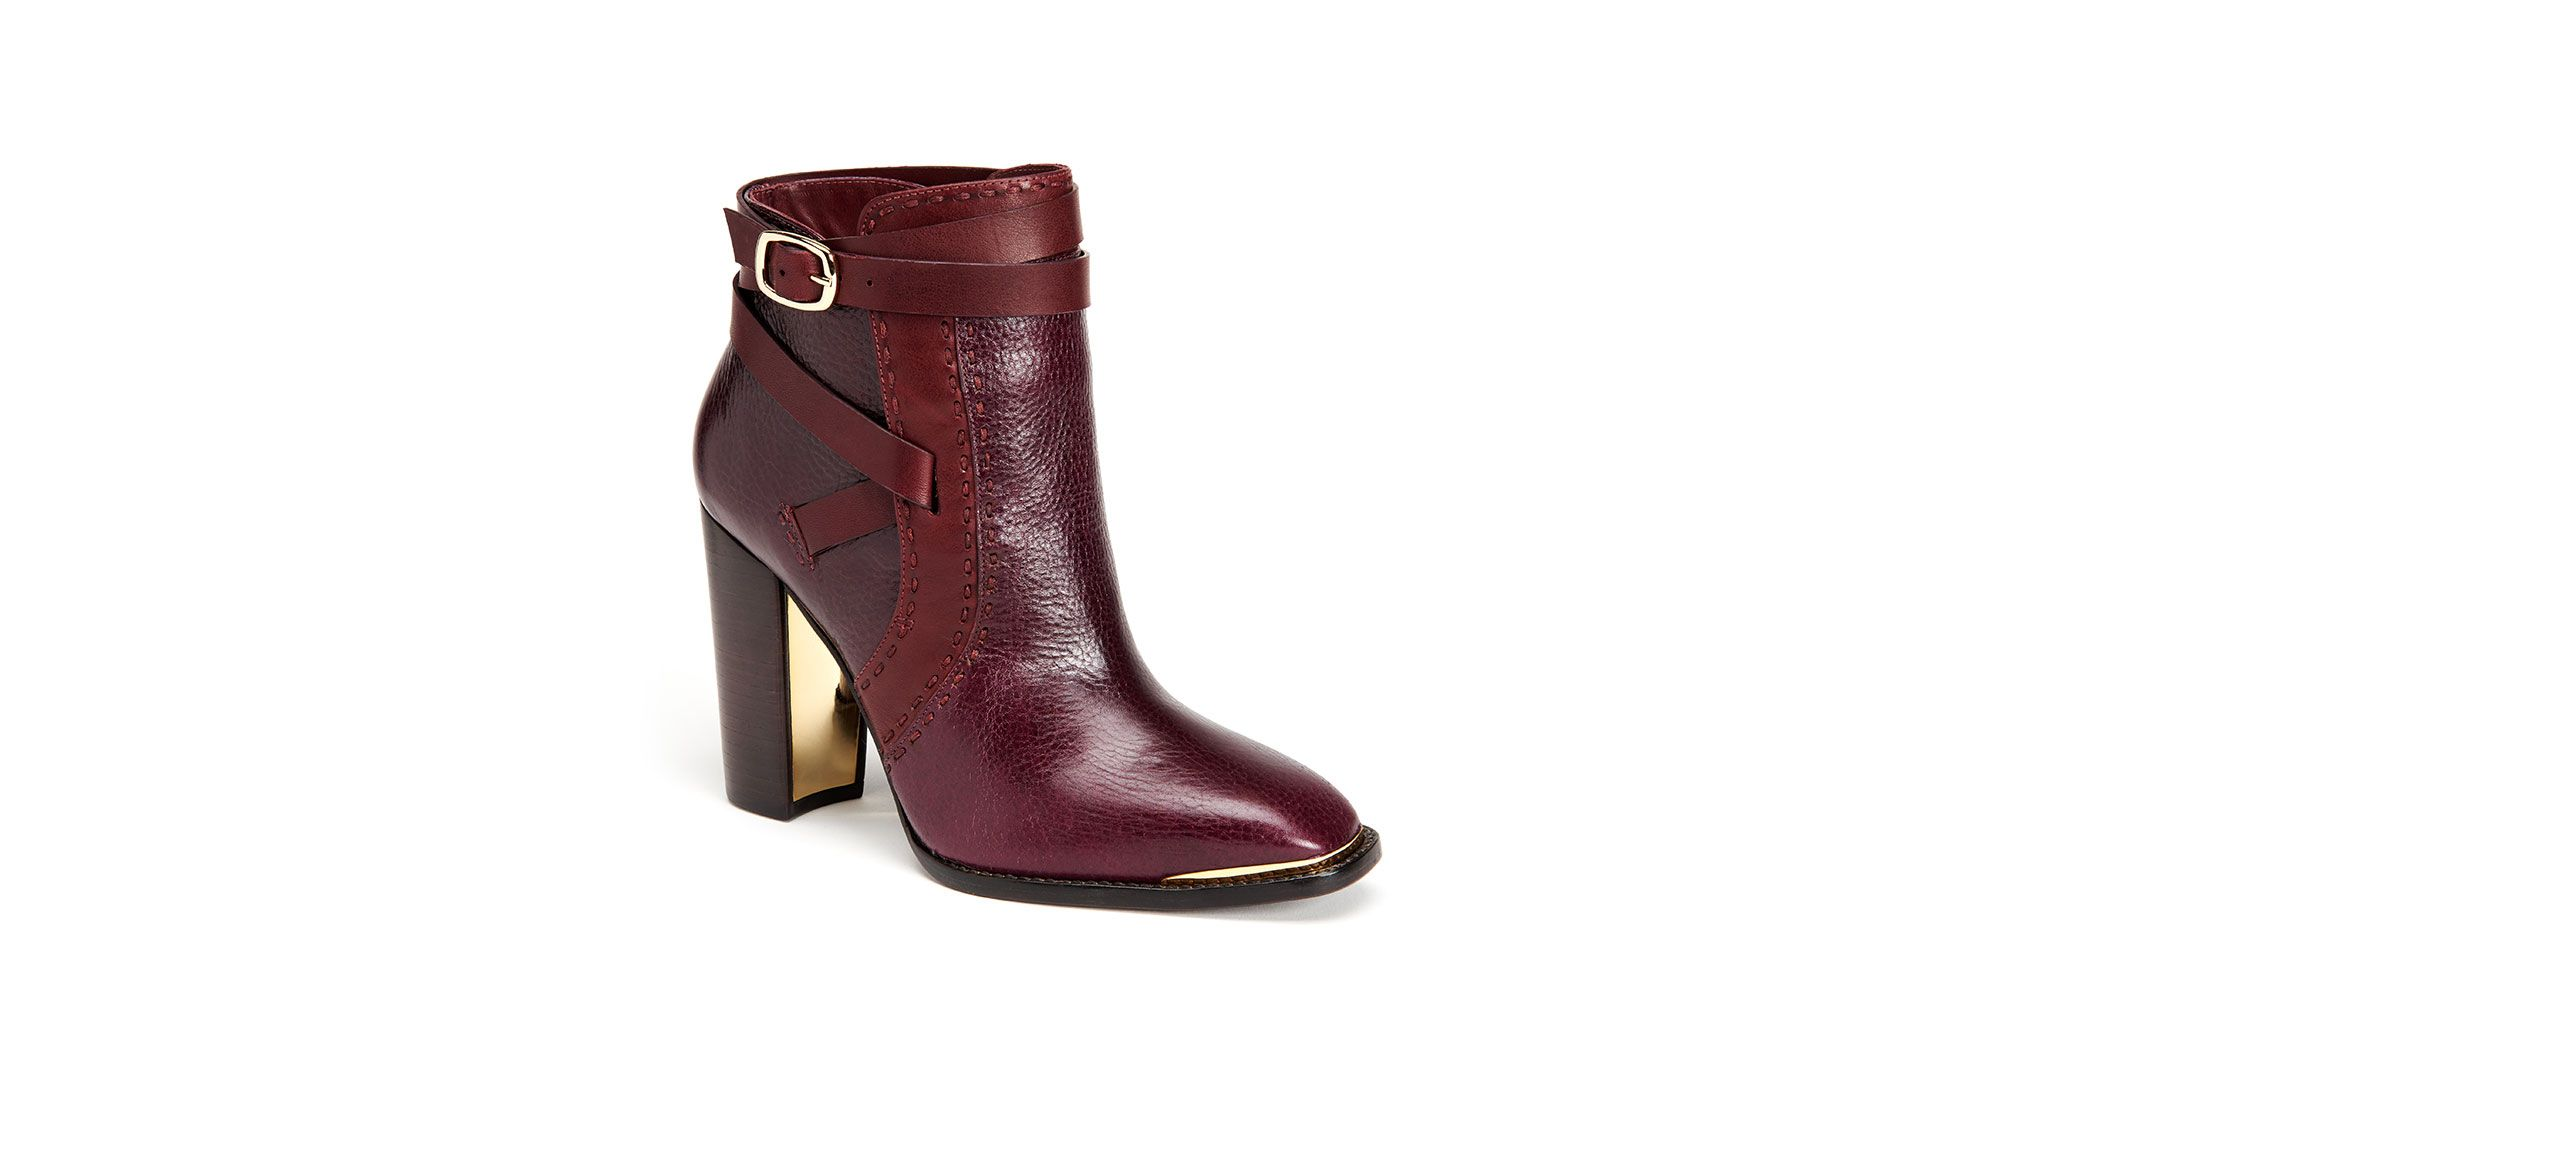 From their tumbled vachetta design to a wooden base and wraparound buckle detailing, these ankle boots are simply stunning.